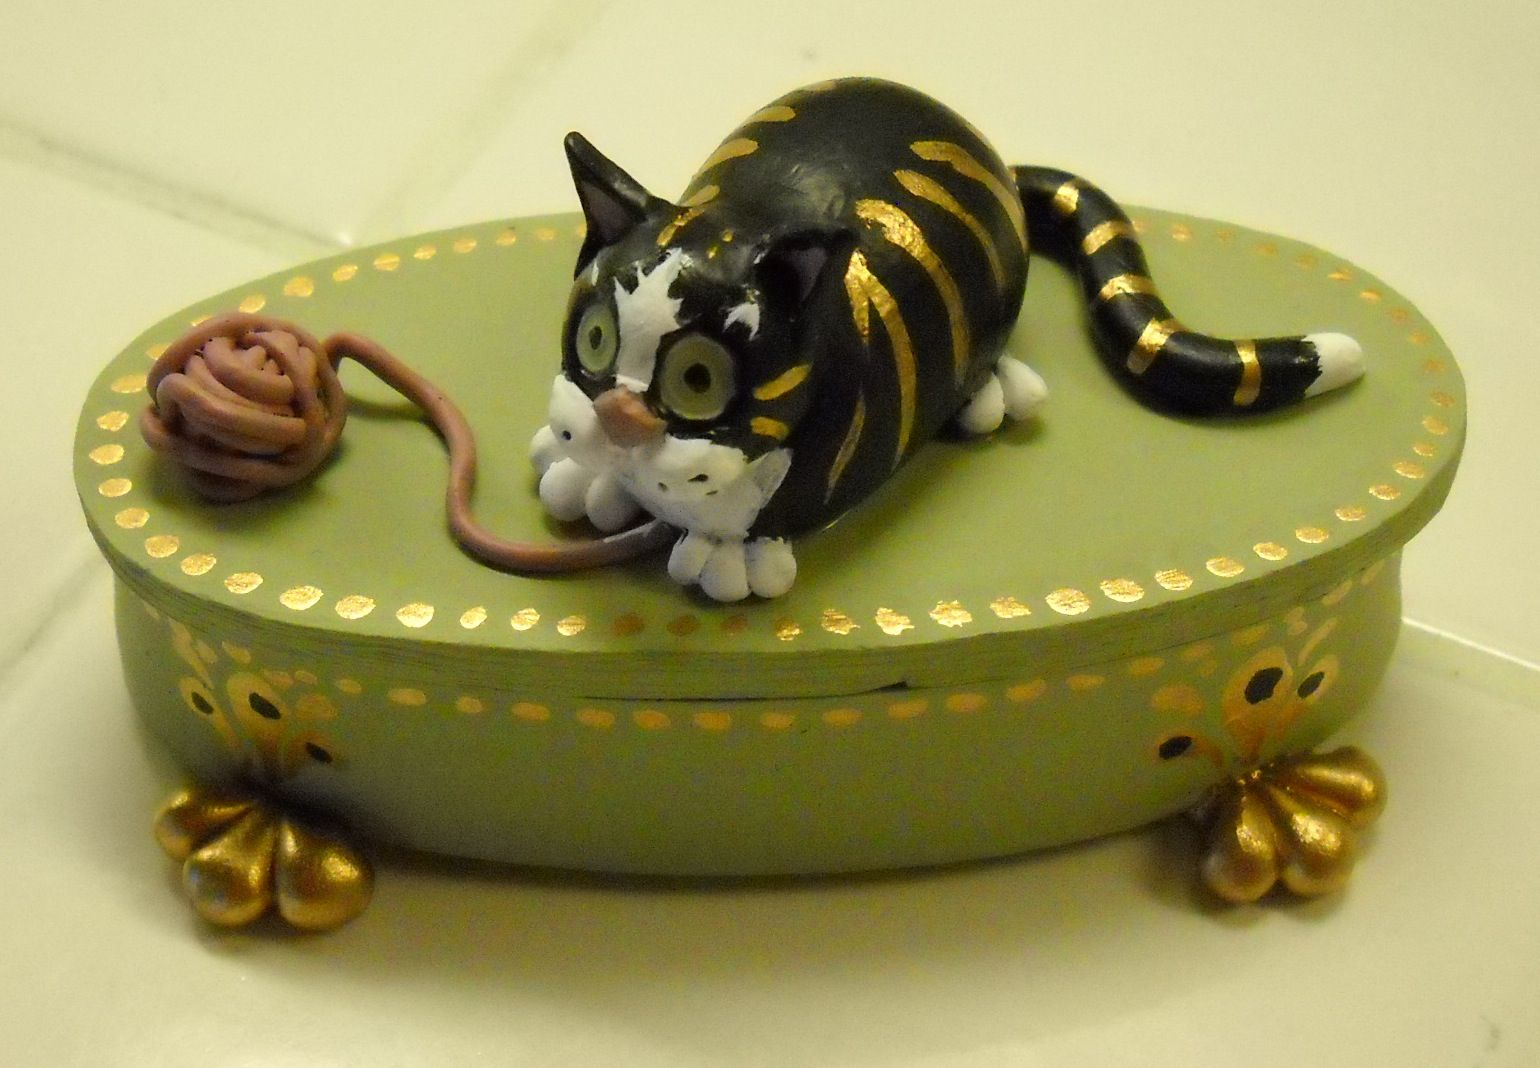 Cats In Art Illustration Decorative Arts And Design Whisker Box In Which To Store Cat Whiskers Cat Whiskers Crazy Cats Crazy Cat Lady